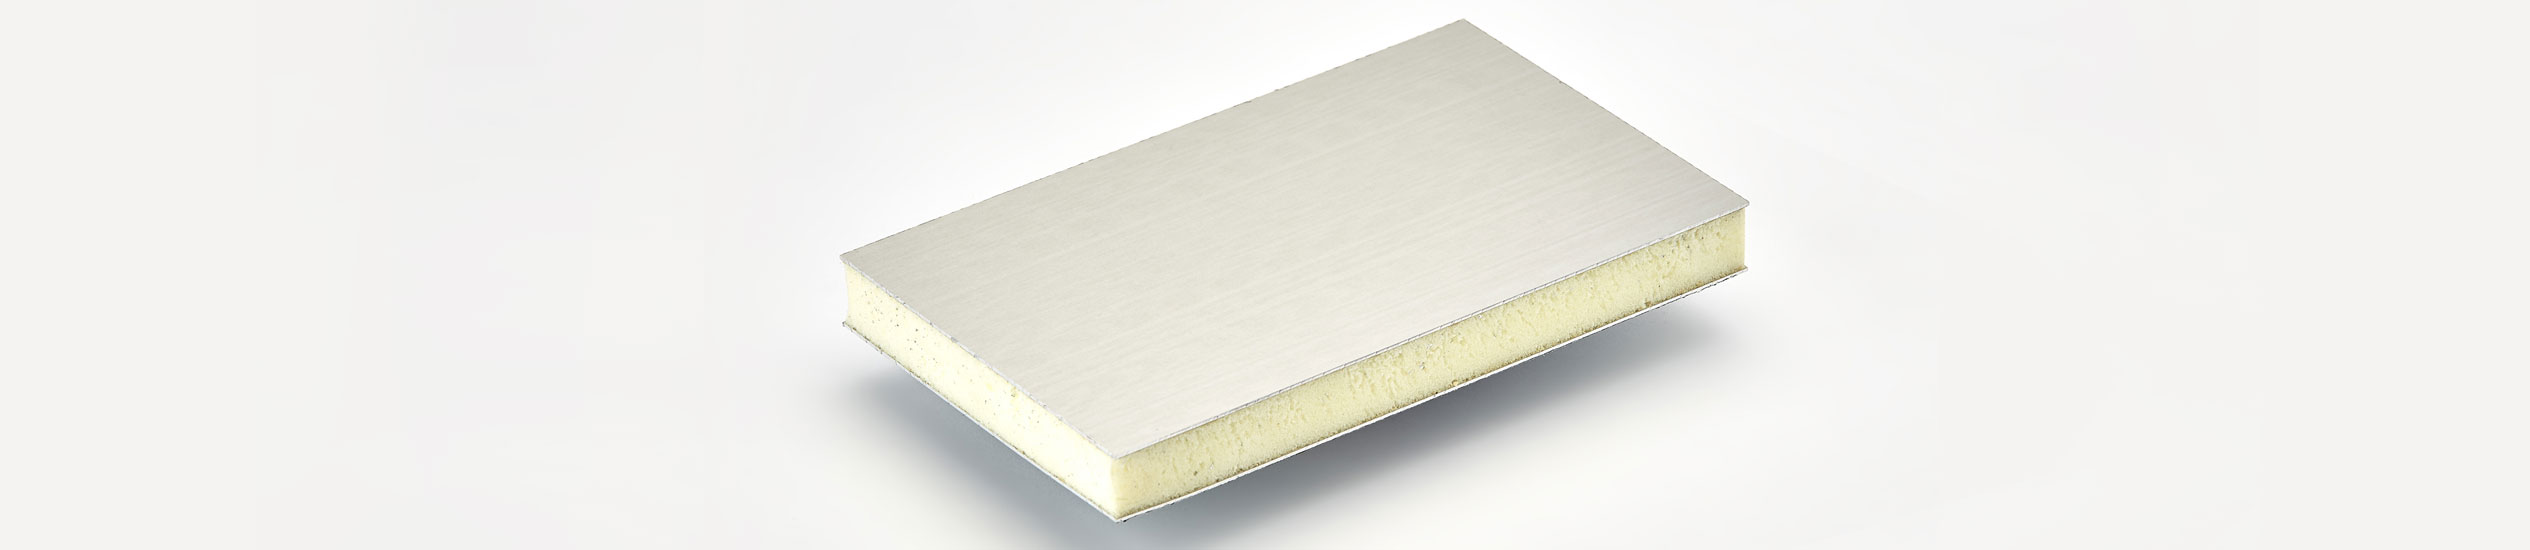 "COMPOCEL ALF is a lightweight panel composed by a core in EPS ""extruded polystyrene"" and bonded with aluminium faces.Foam core is offered in different densities"